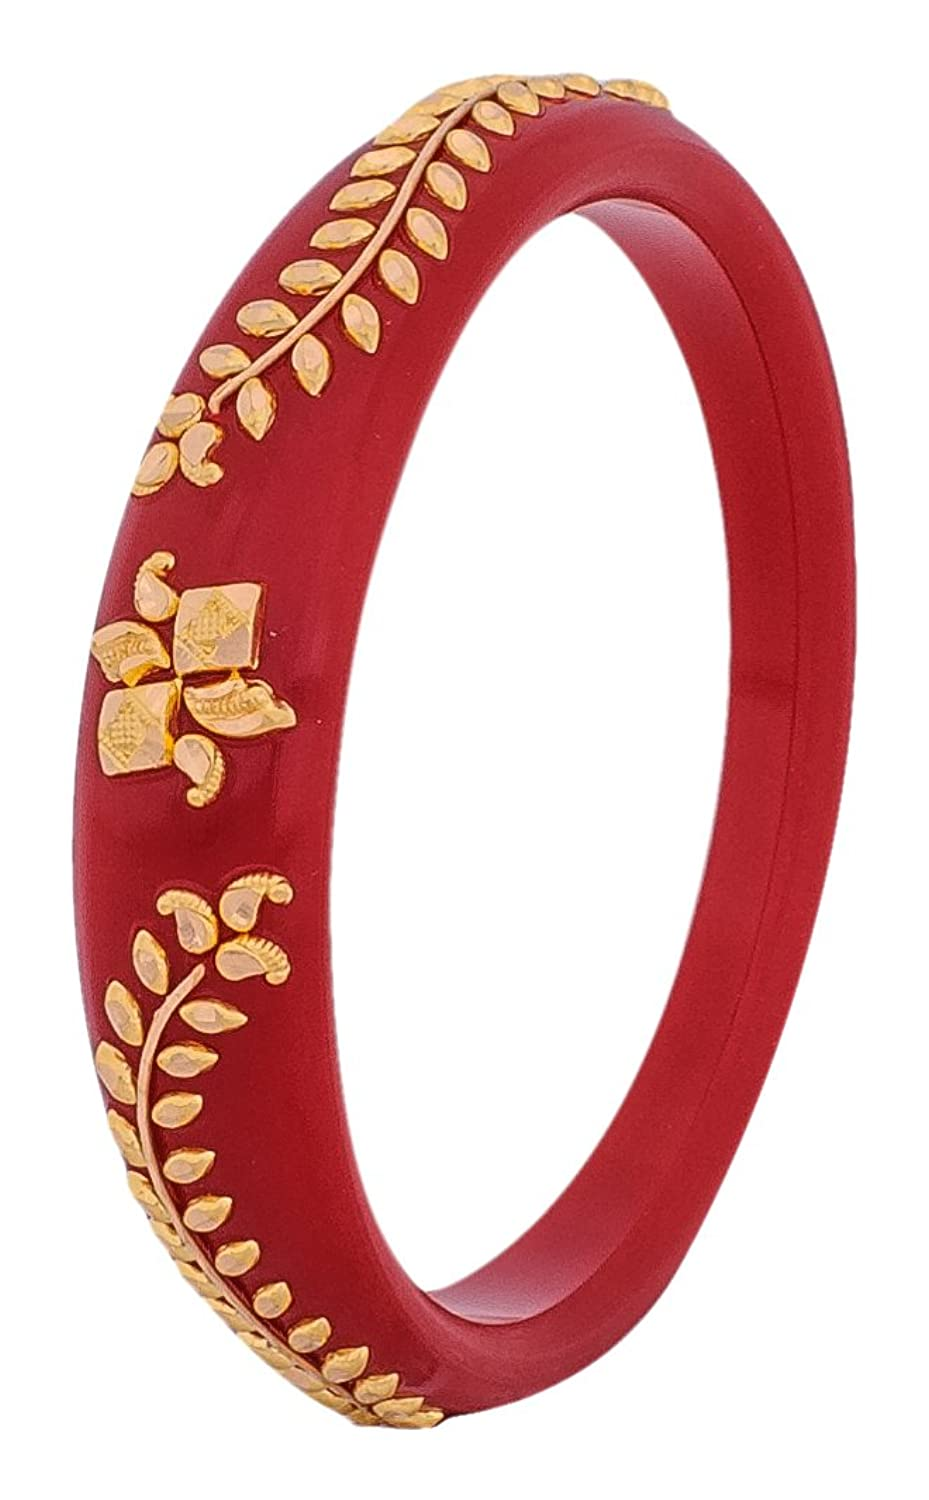 gold bangles does thin bangle designs seam lar rs a texture much price how buy jewellery cost